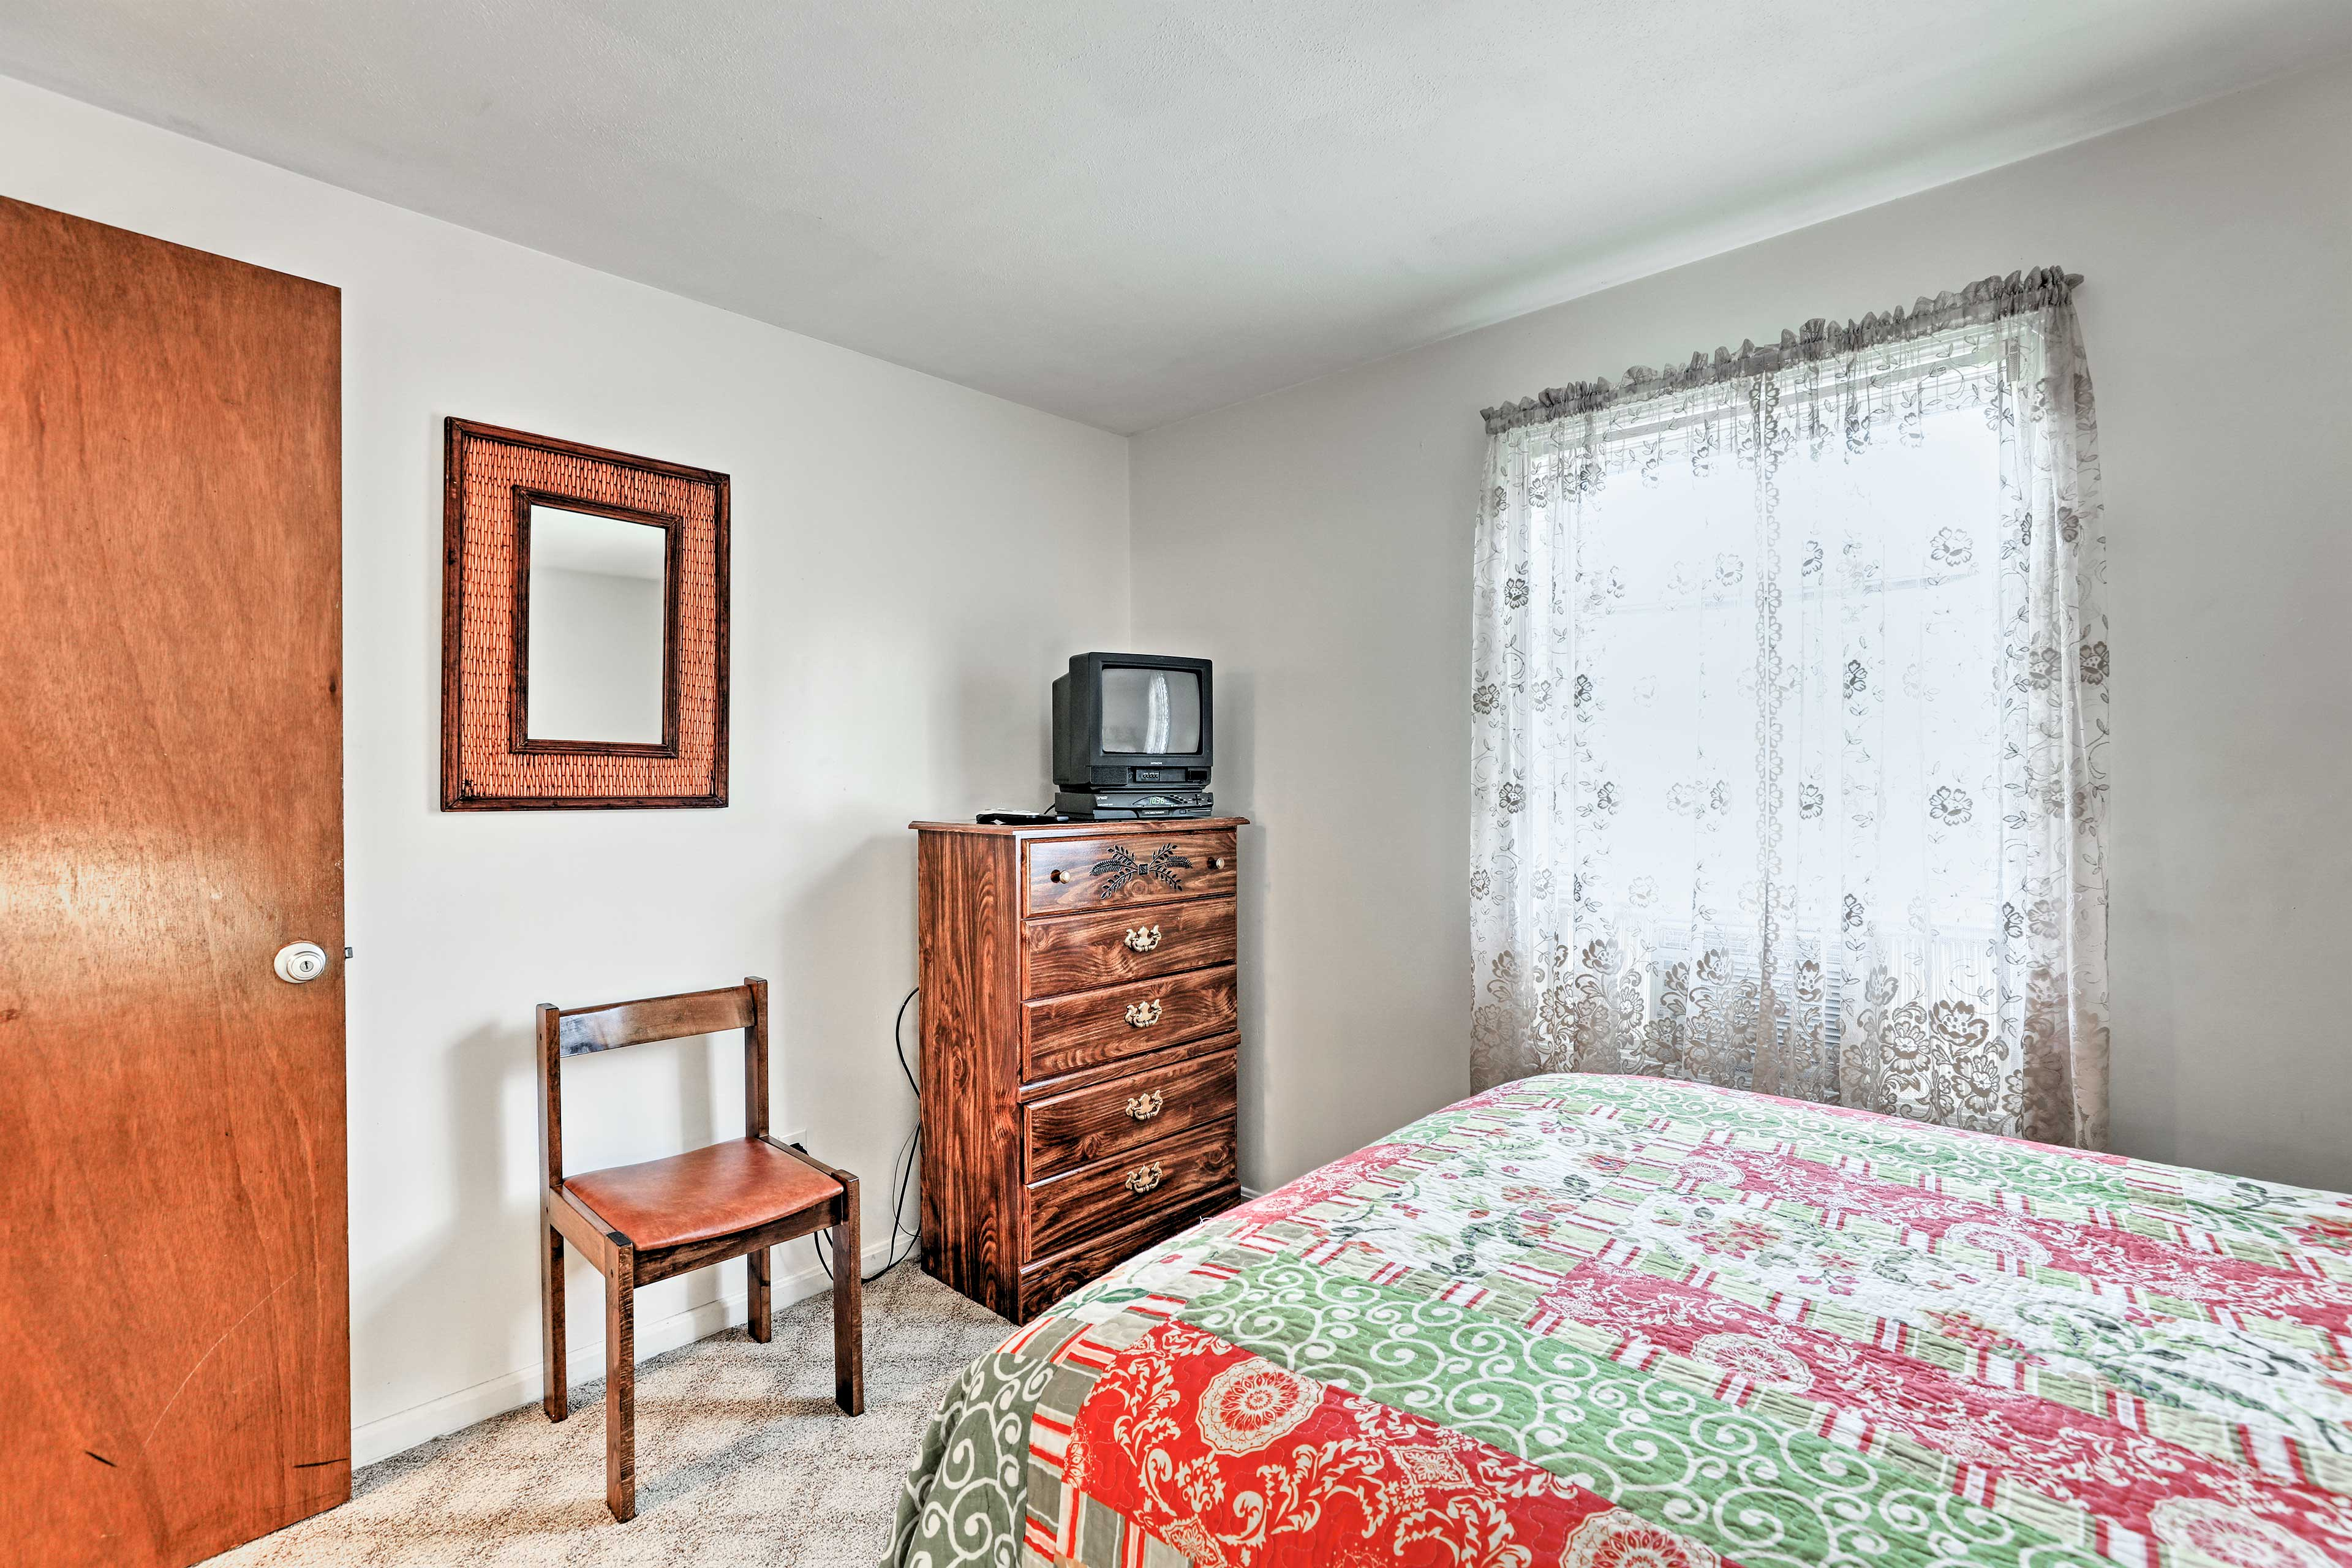 Relive the good ol' days while you watch reruns on the TV in the third bedroom.